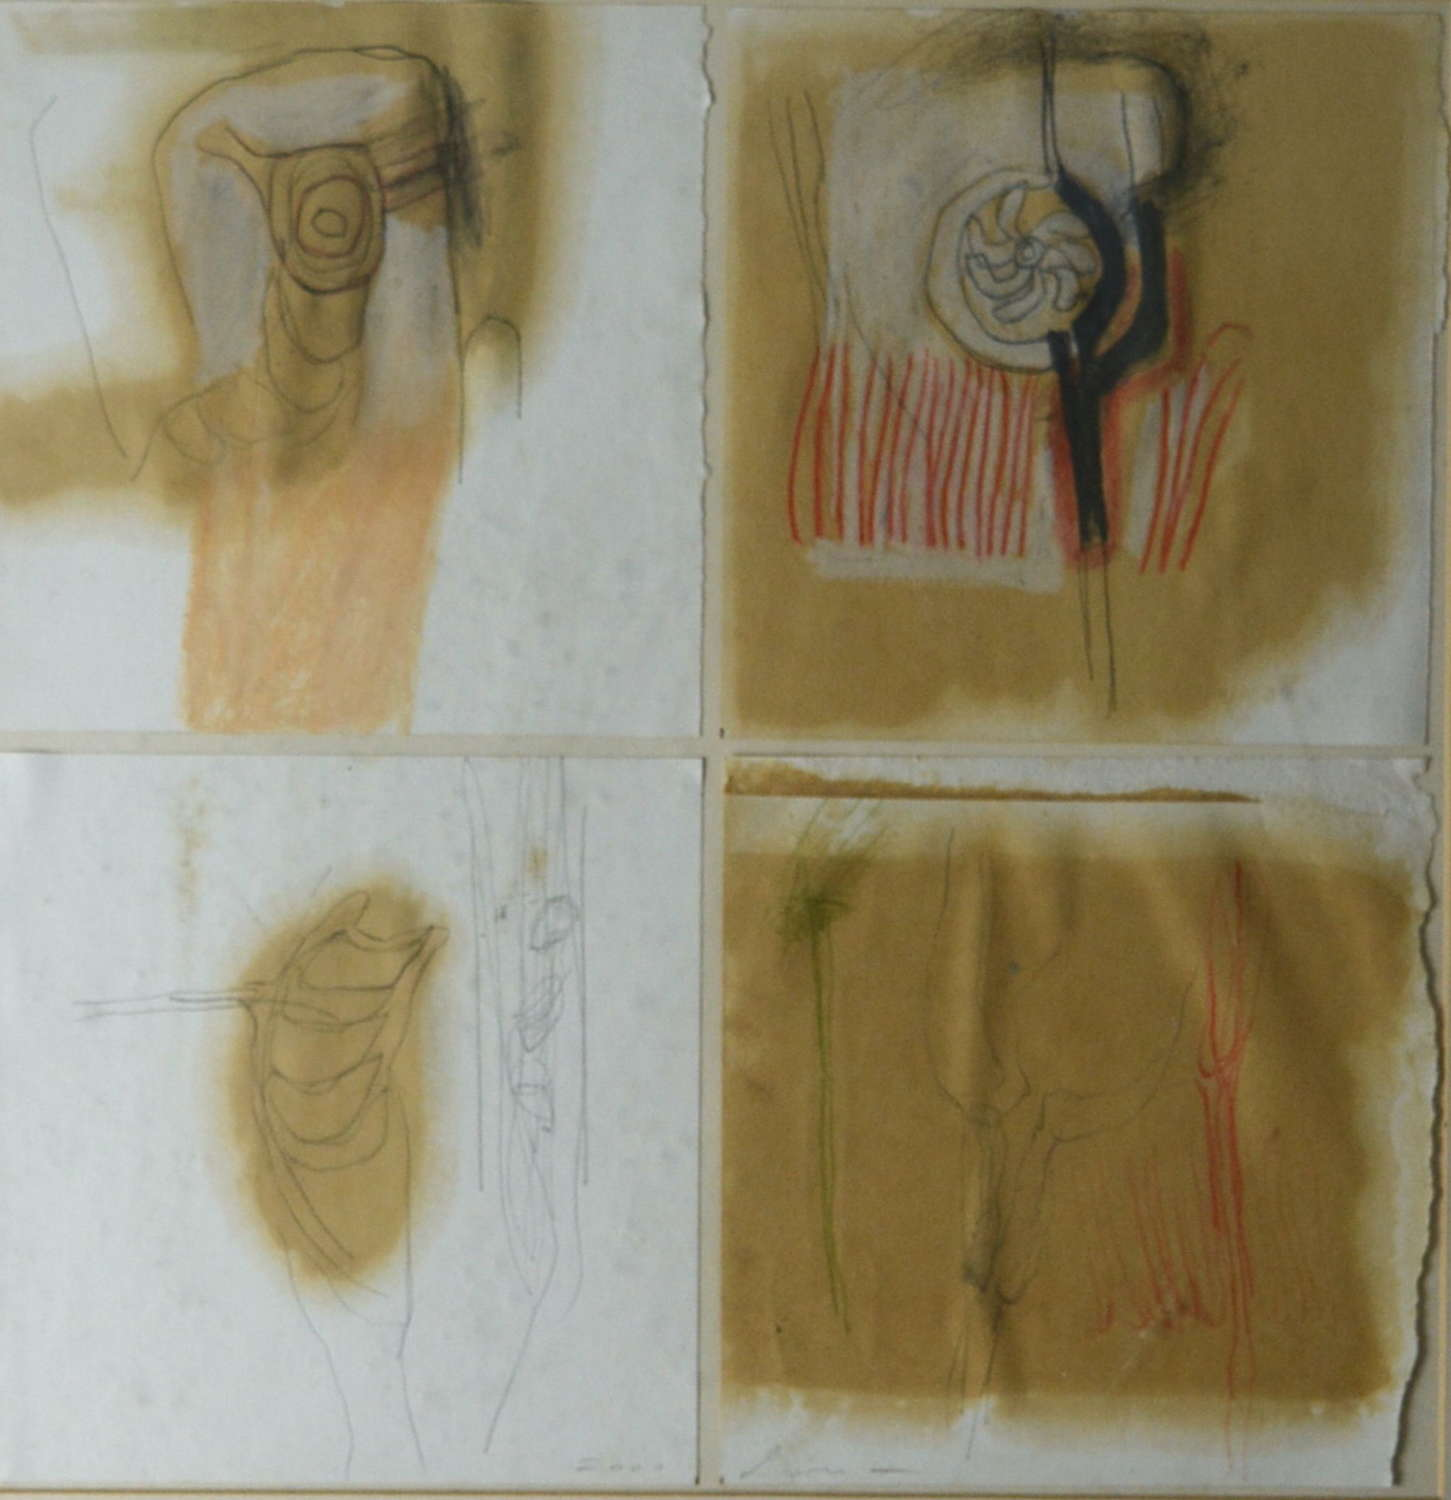 COMPOSITION OF ABSTRACT STUDIES BY KAREN LORENZ